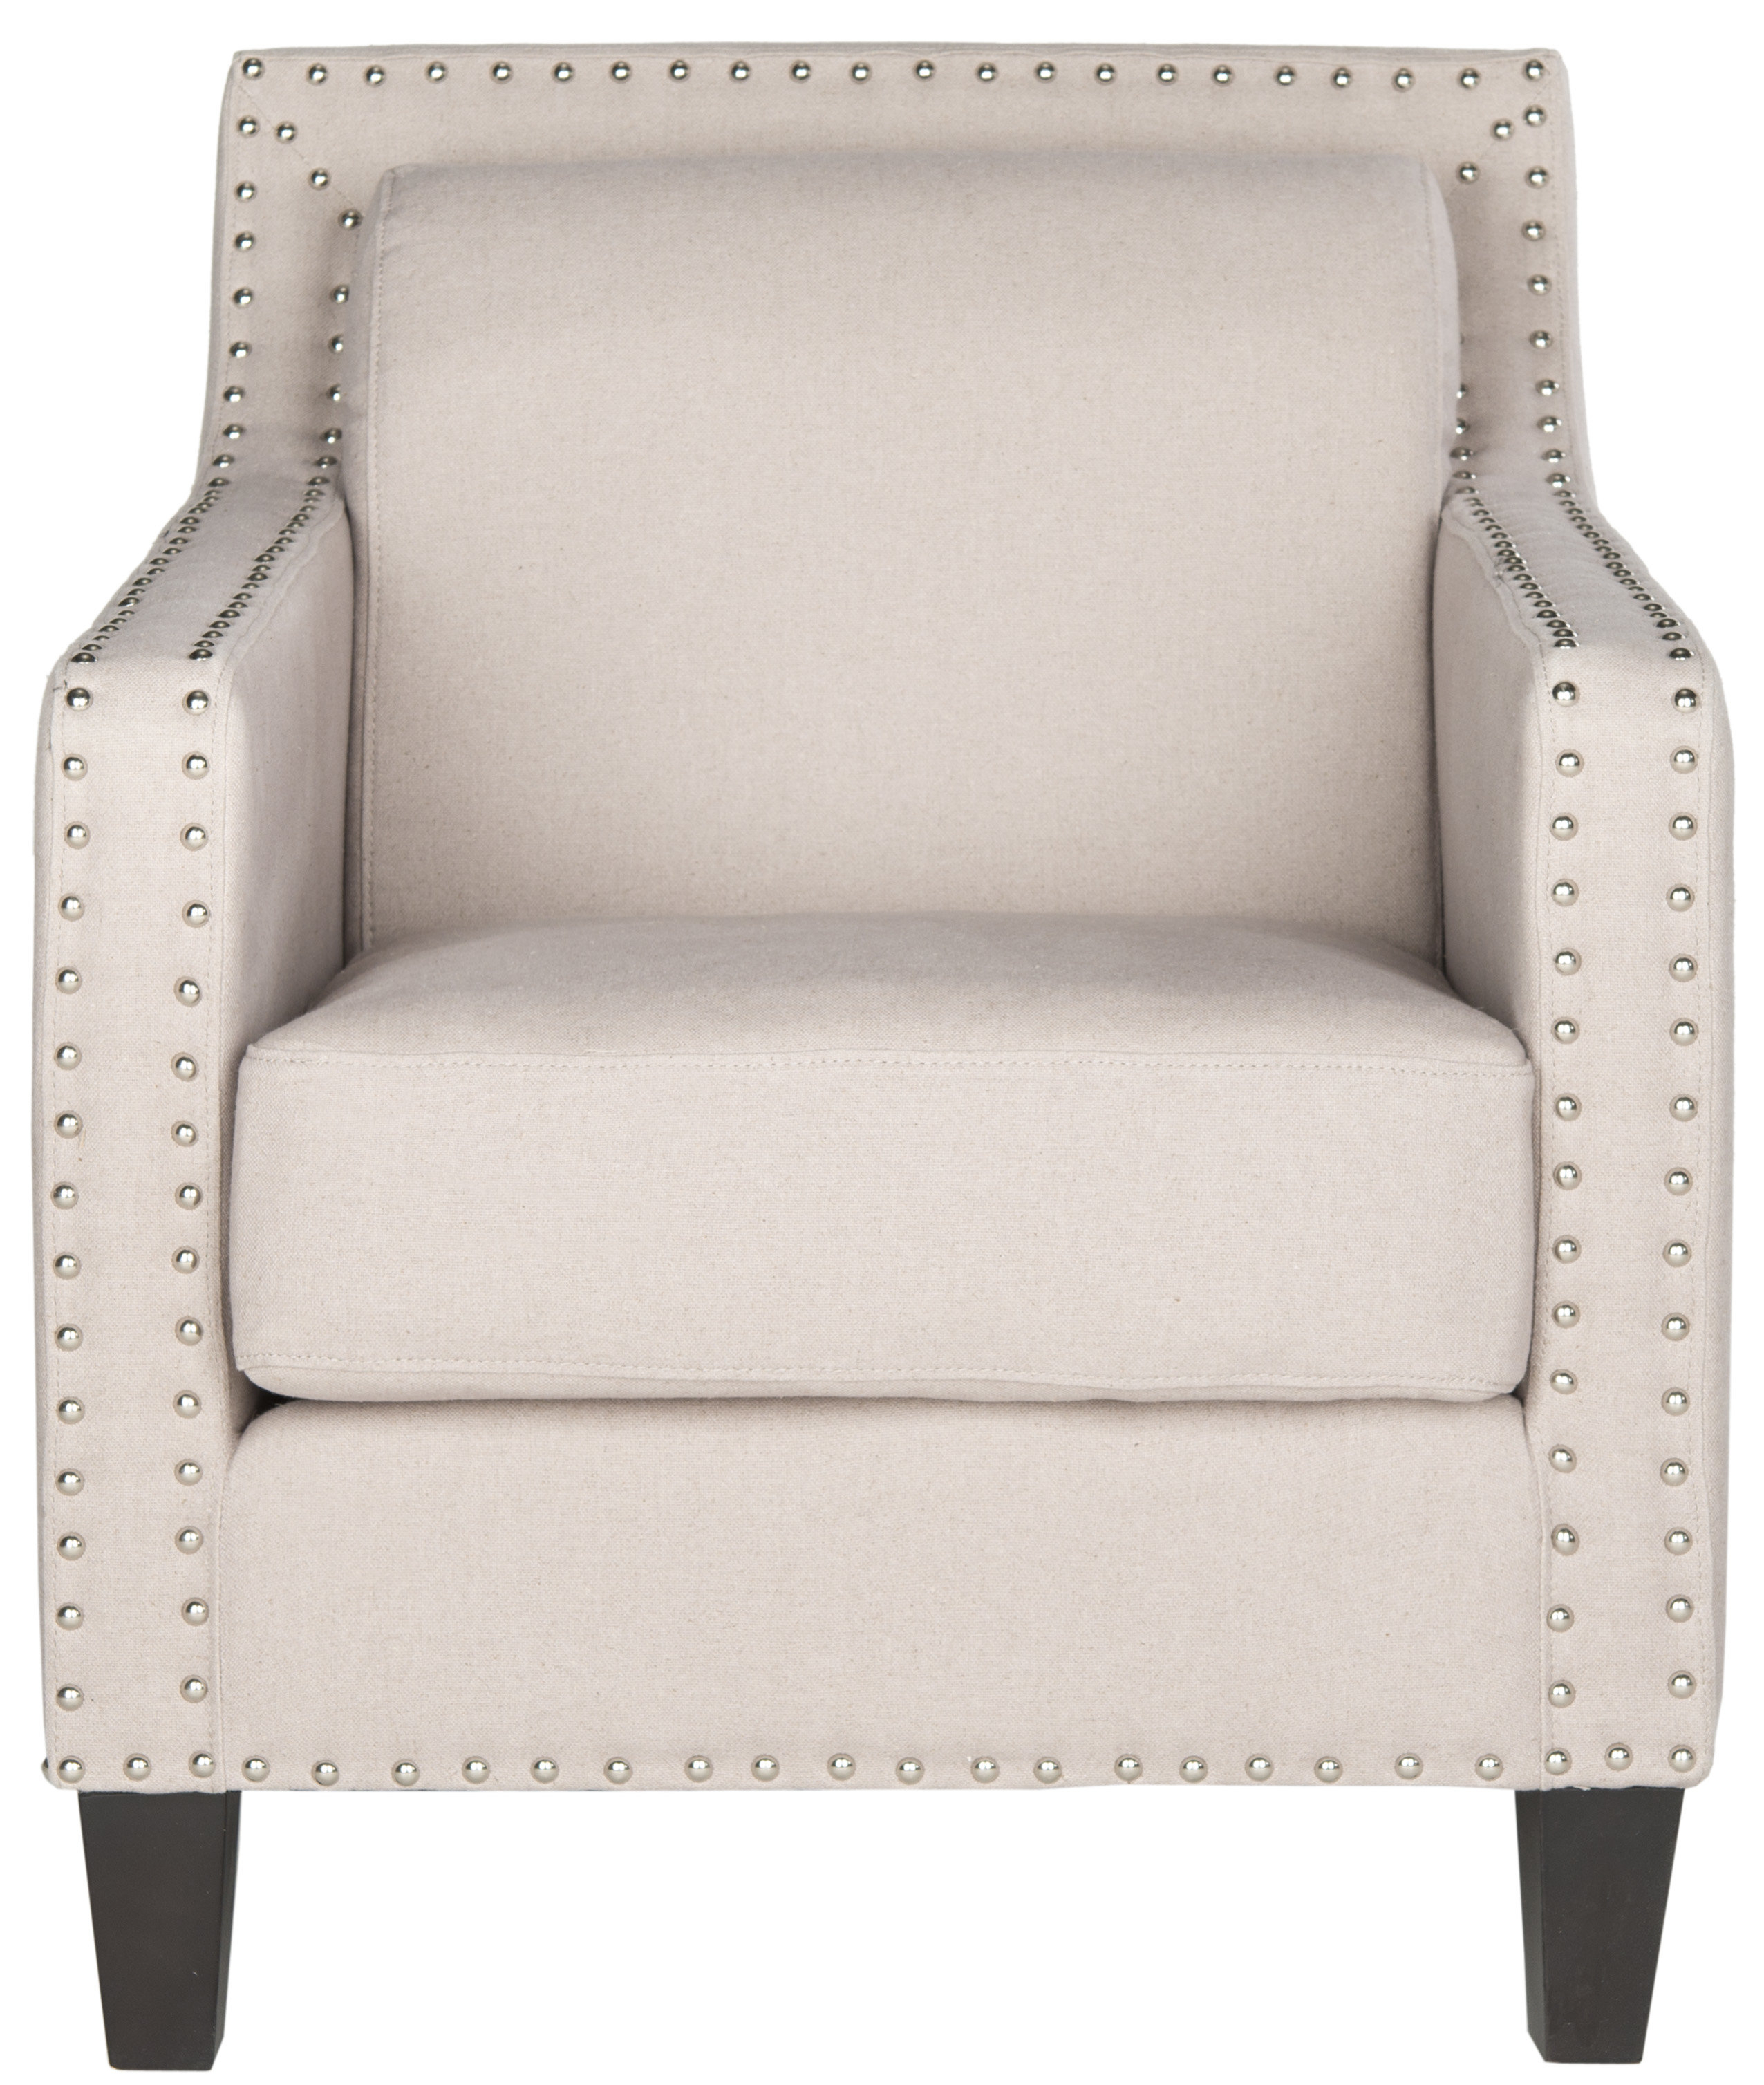 Safavieh Lucy Armchair & Reviews | Wayfair Within Lucy Grey Sofa Chairs (Image 15 of 20)